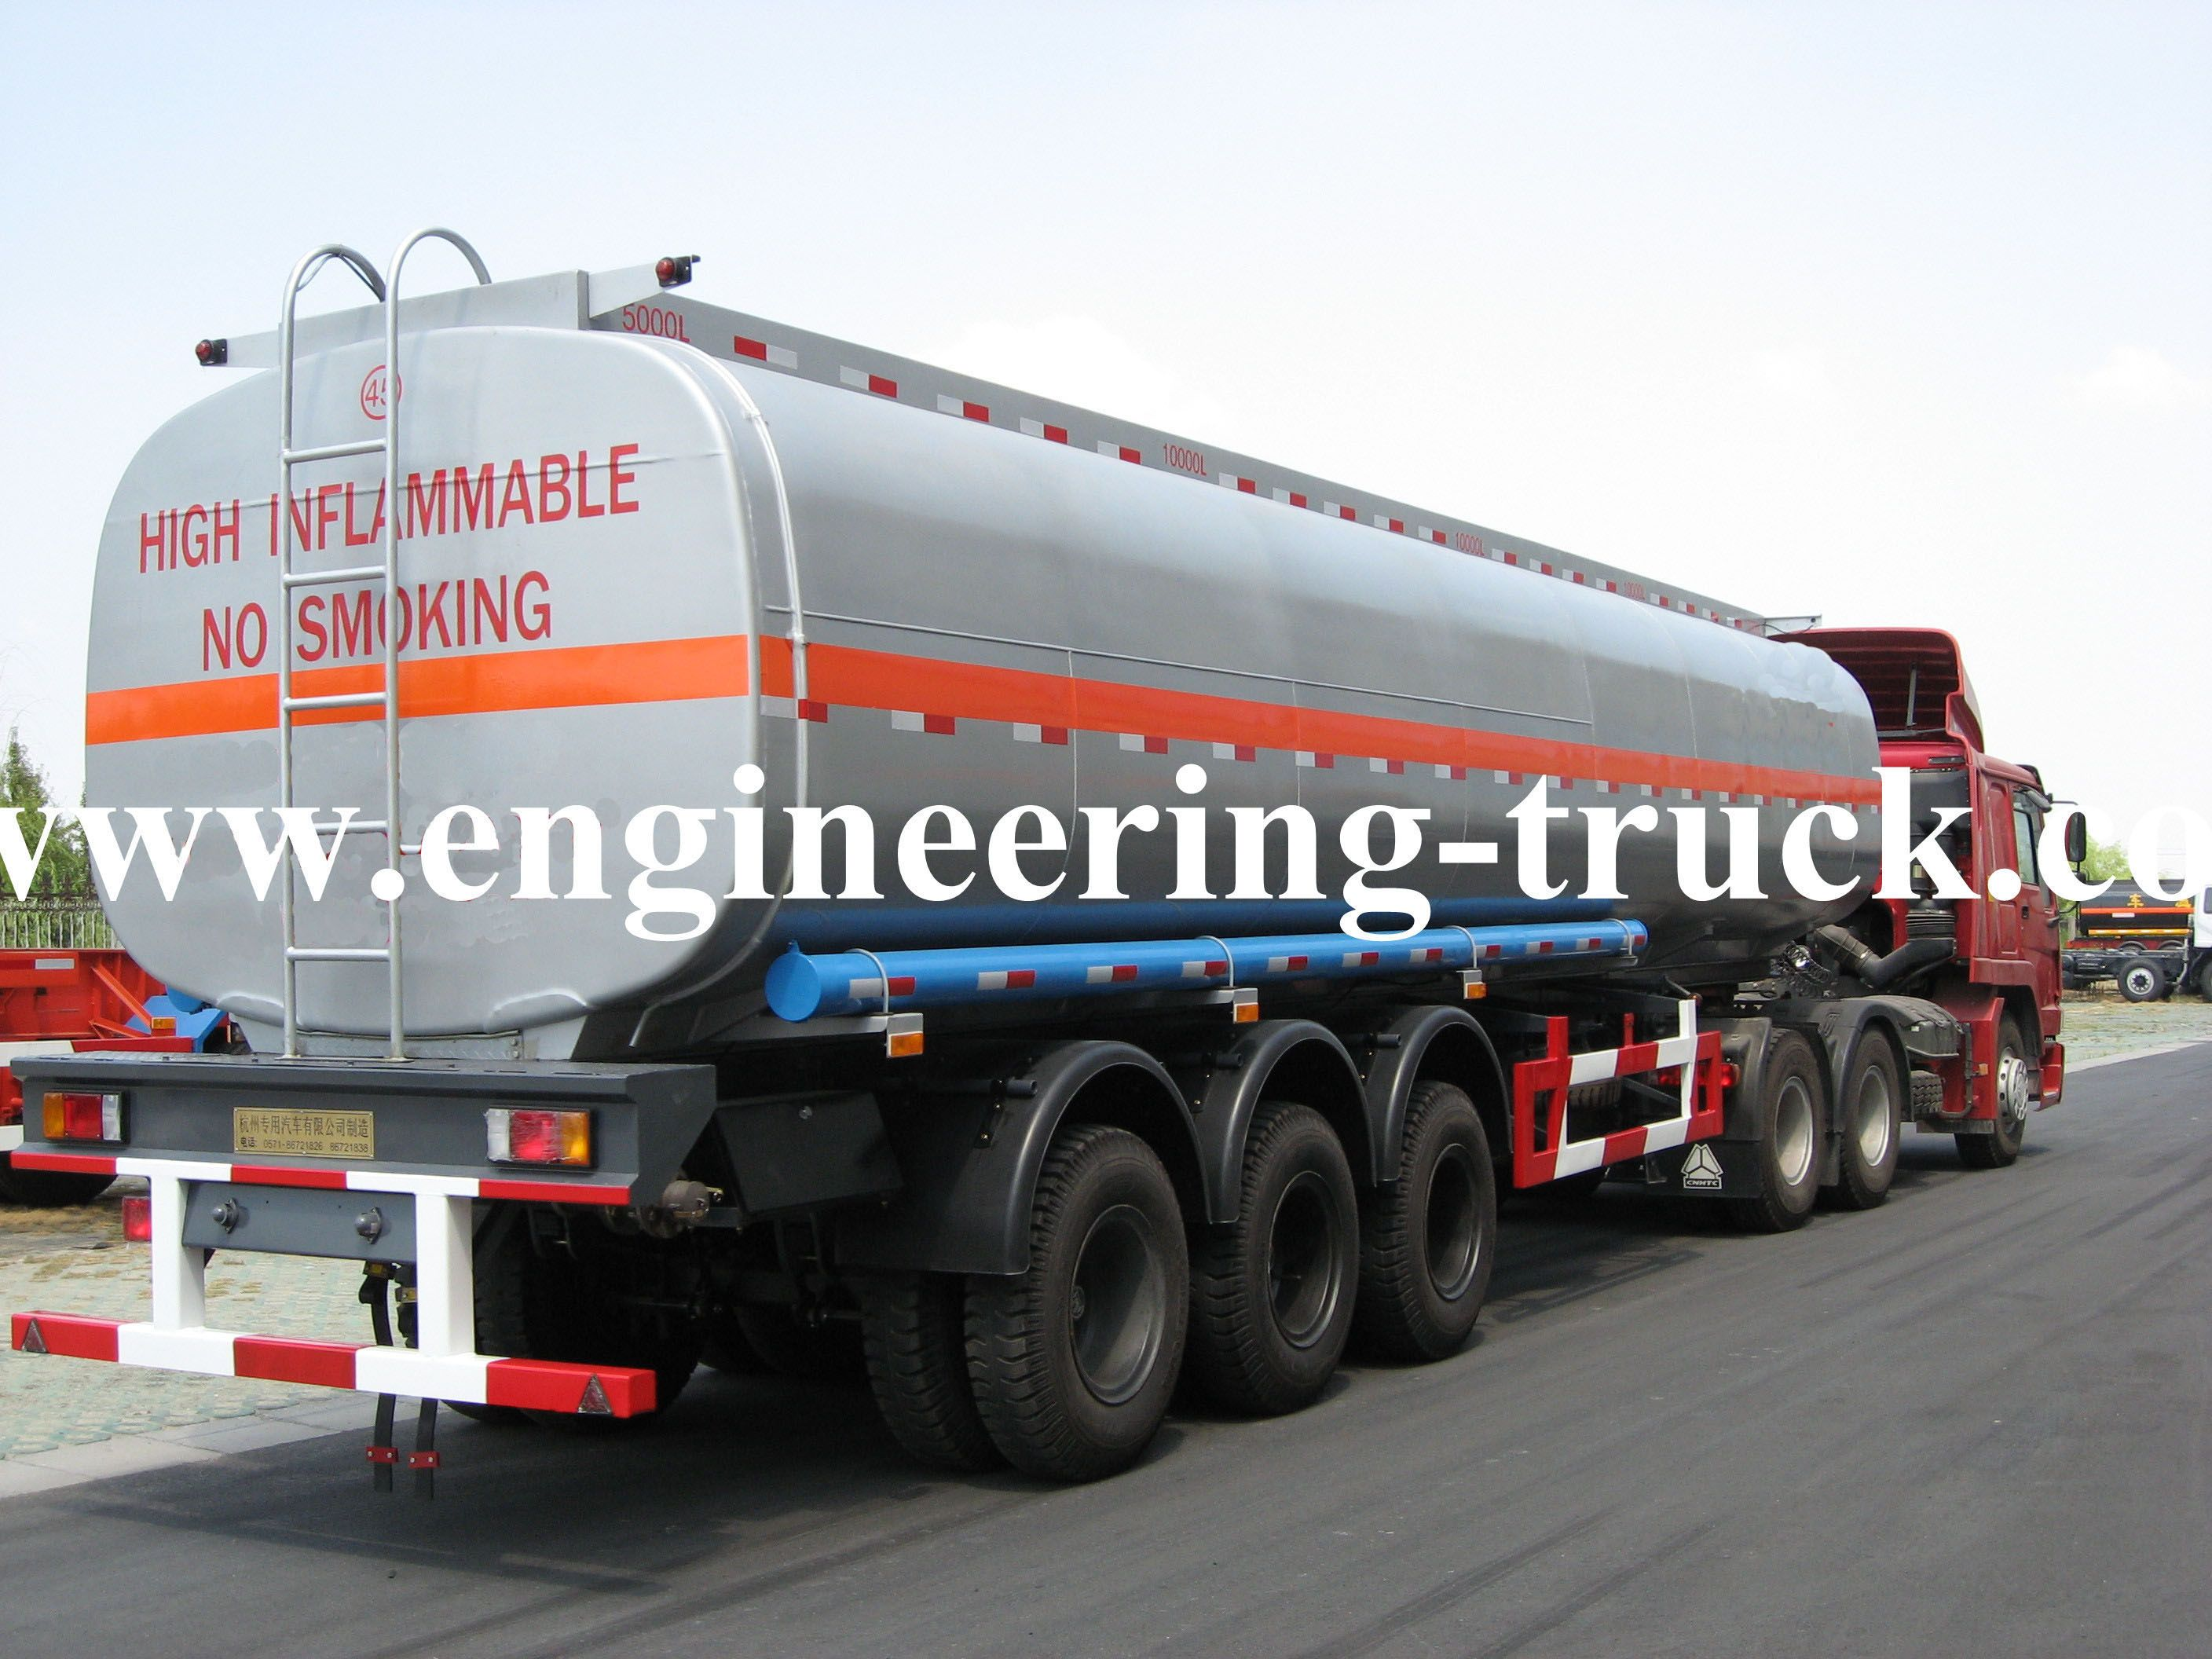 we've exported  Chemical Liquid Tank Semi-trailer for Butanol/Gas/Diesel to more than  50 countries for the past 20 years. If you are interested in,please click web:http://www.engineering-truck.com/chemical-liquid-tank-semi-trailer-product-40.html or send email to us. Email:info@engineeering-truck.com TEL:0086-0571-83696958